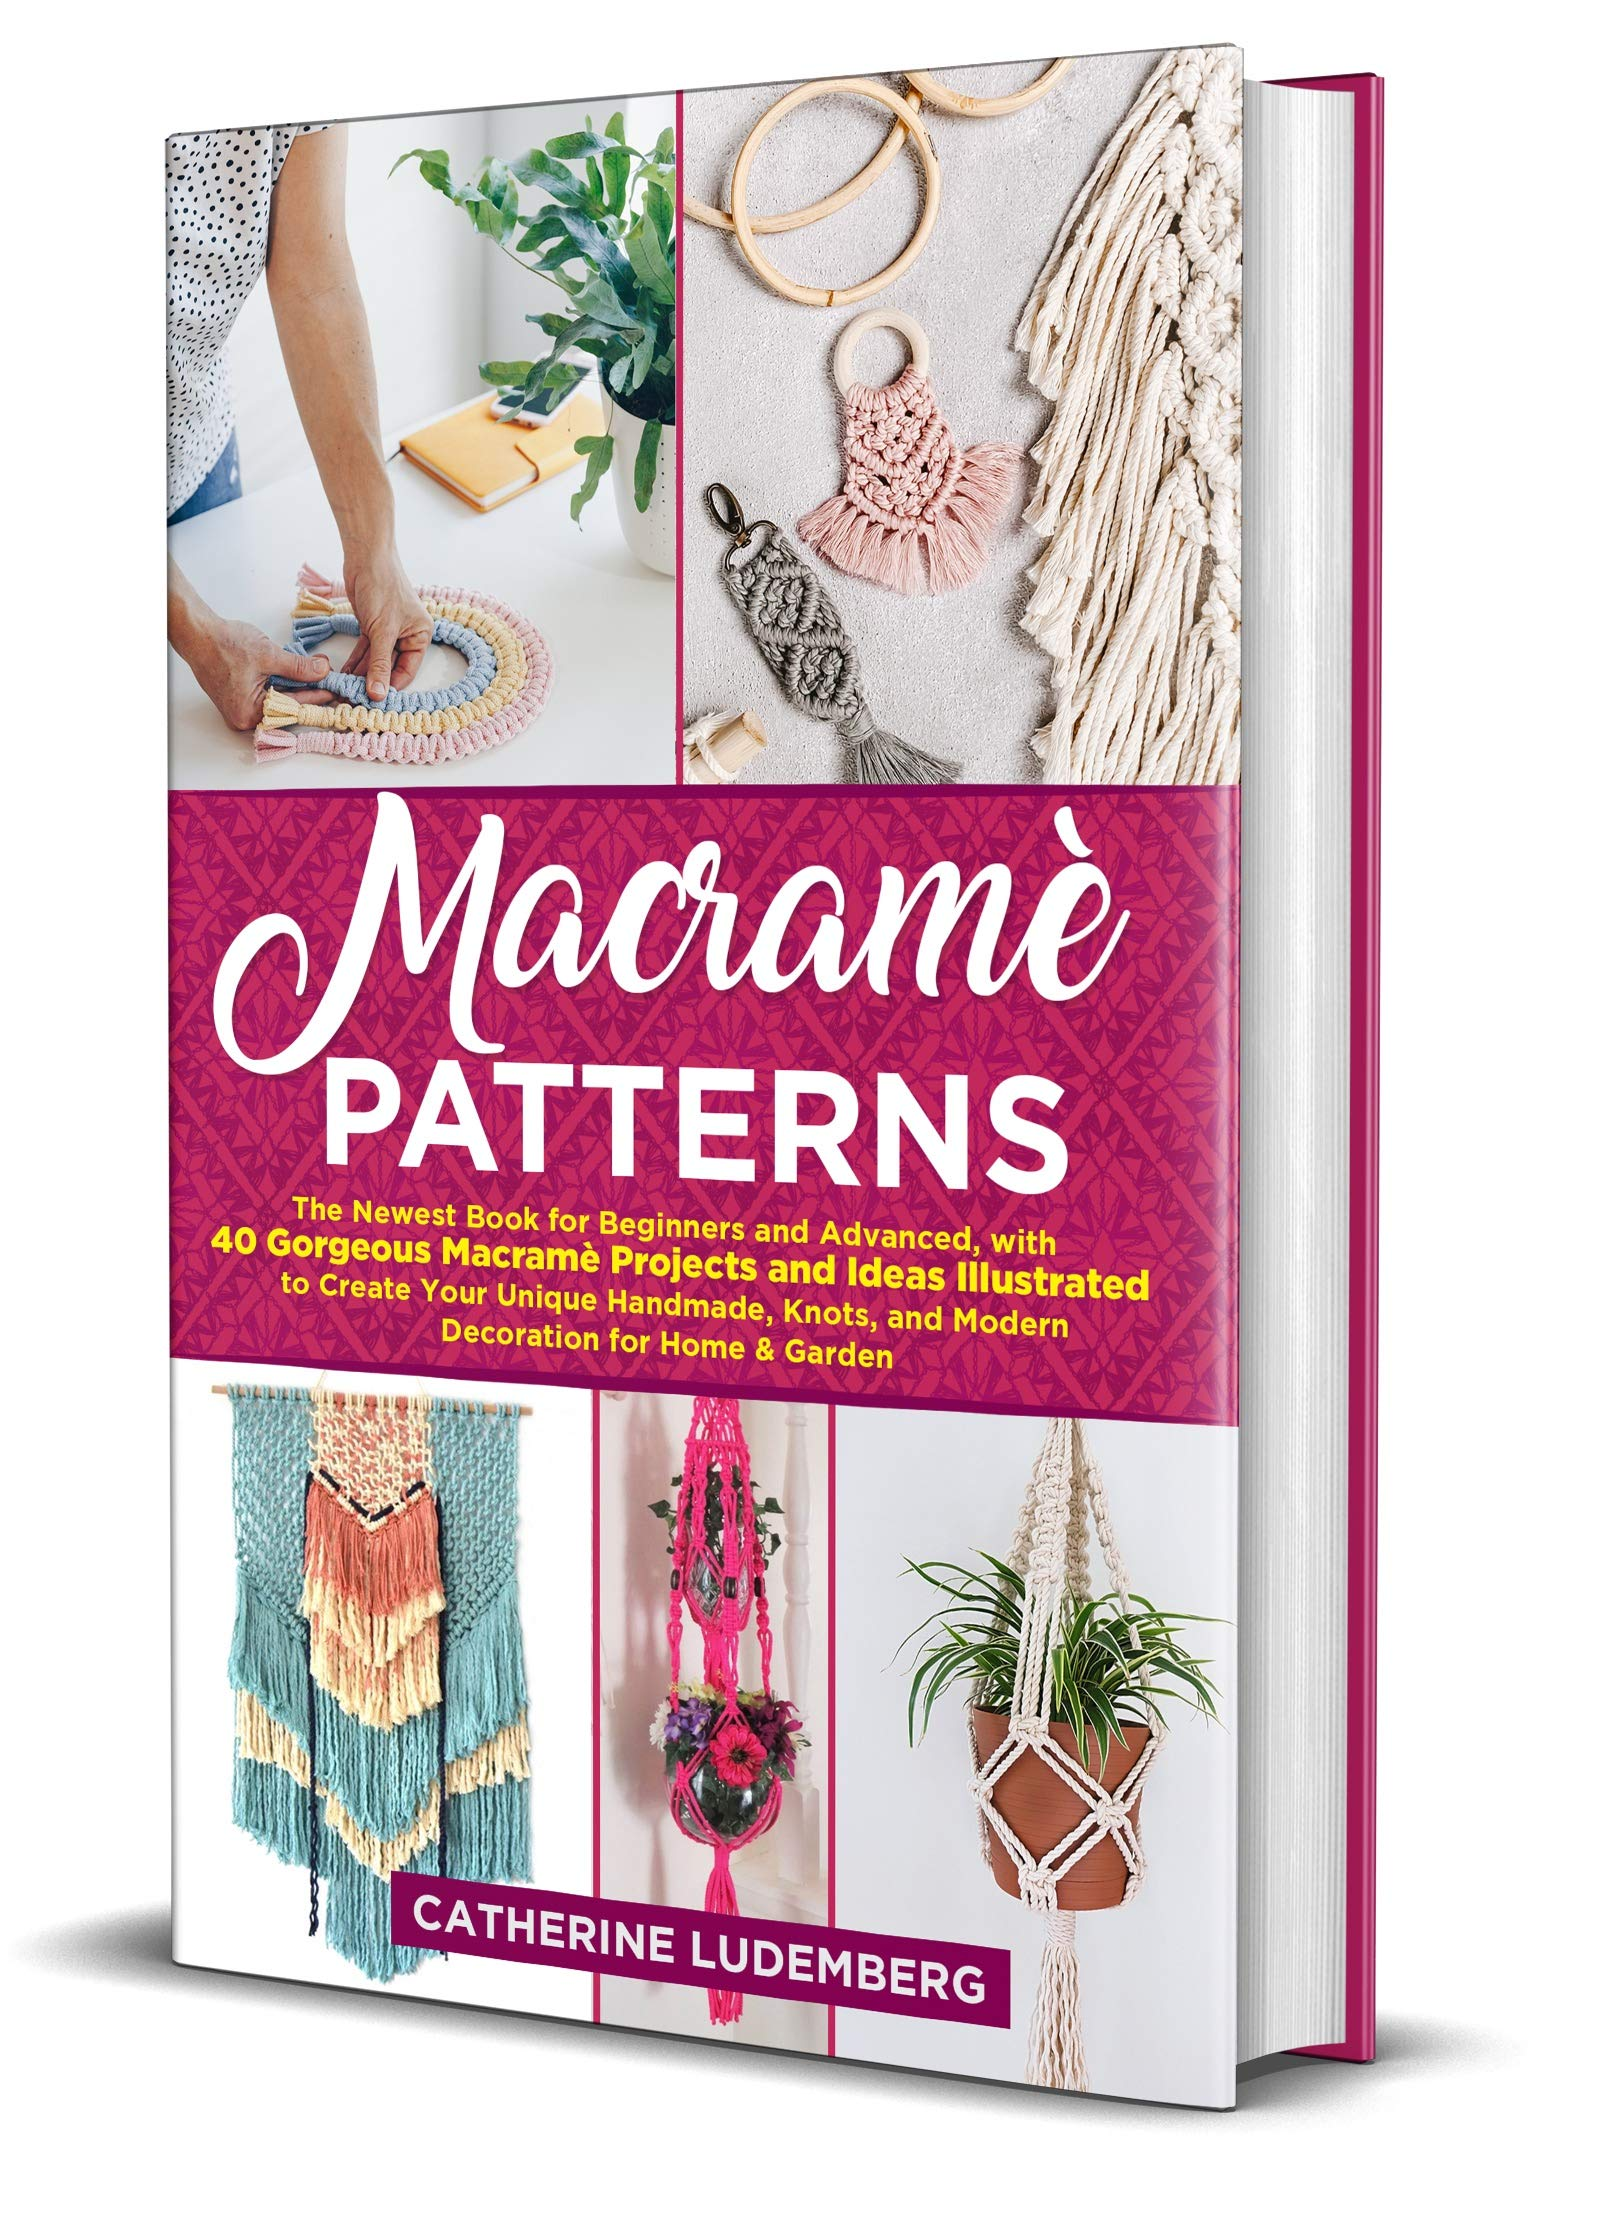 Macramè Patterns: The Newest Book for Beginners and Advanced, with 40 Gorgeous Macramè Projects and Ideas Illustrated to Create Your Unique Handmade, Knots, and Modern Decoration for Home & Garden